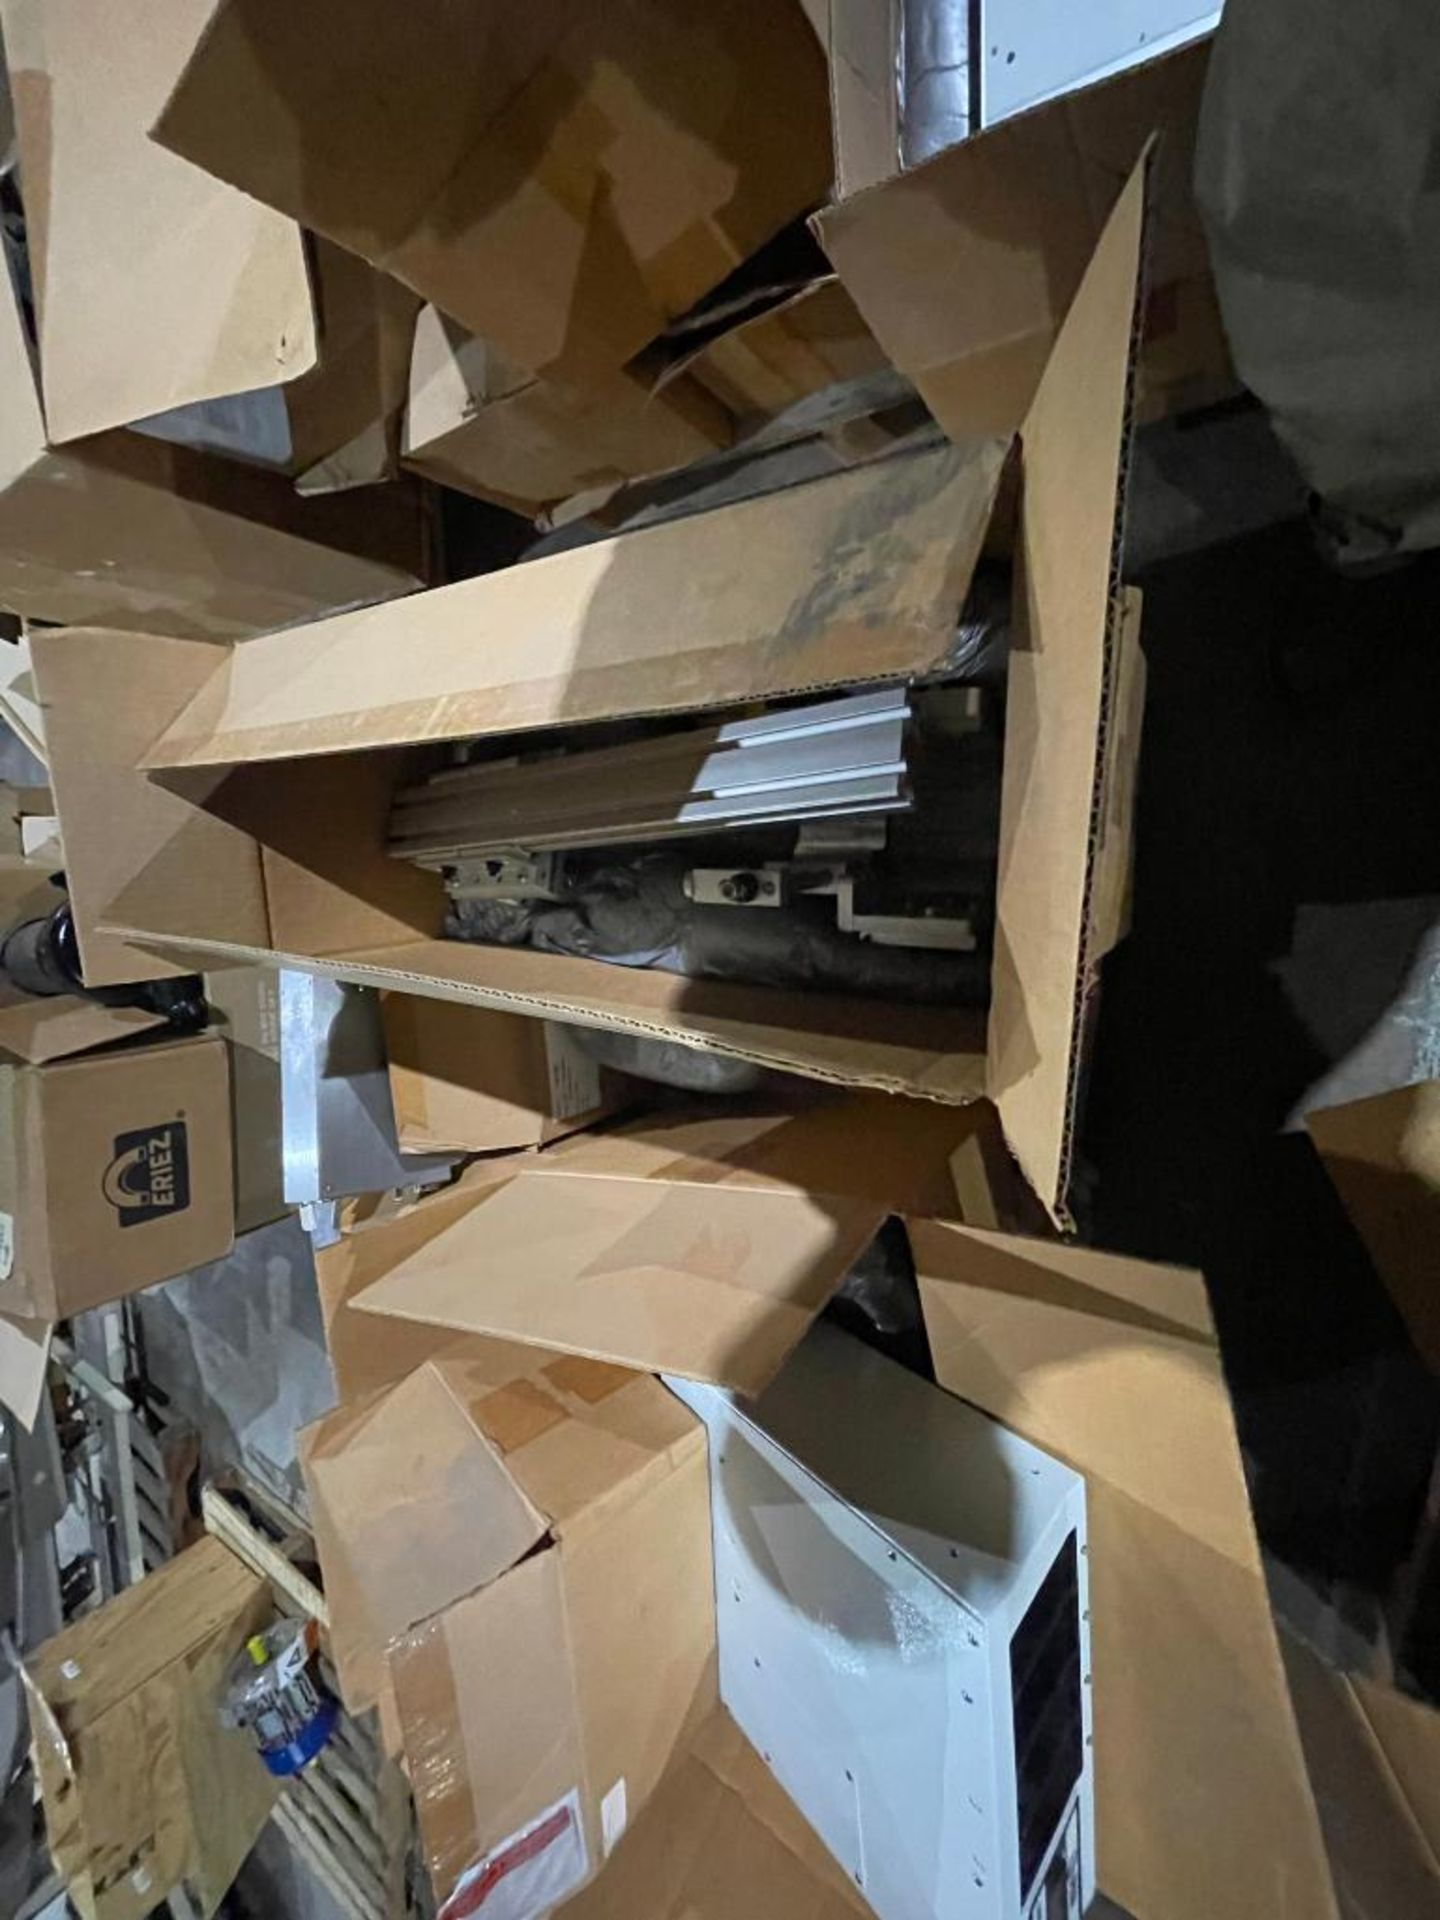 pallet of miscellaneous electronics - Image 16 of 16